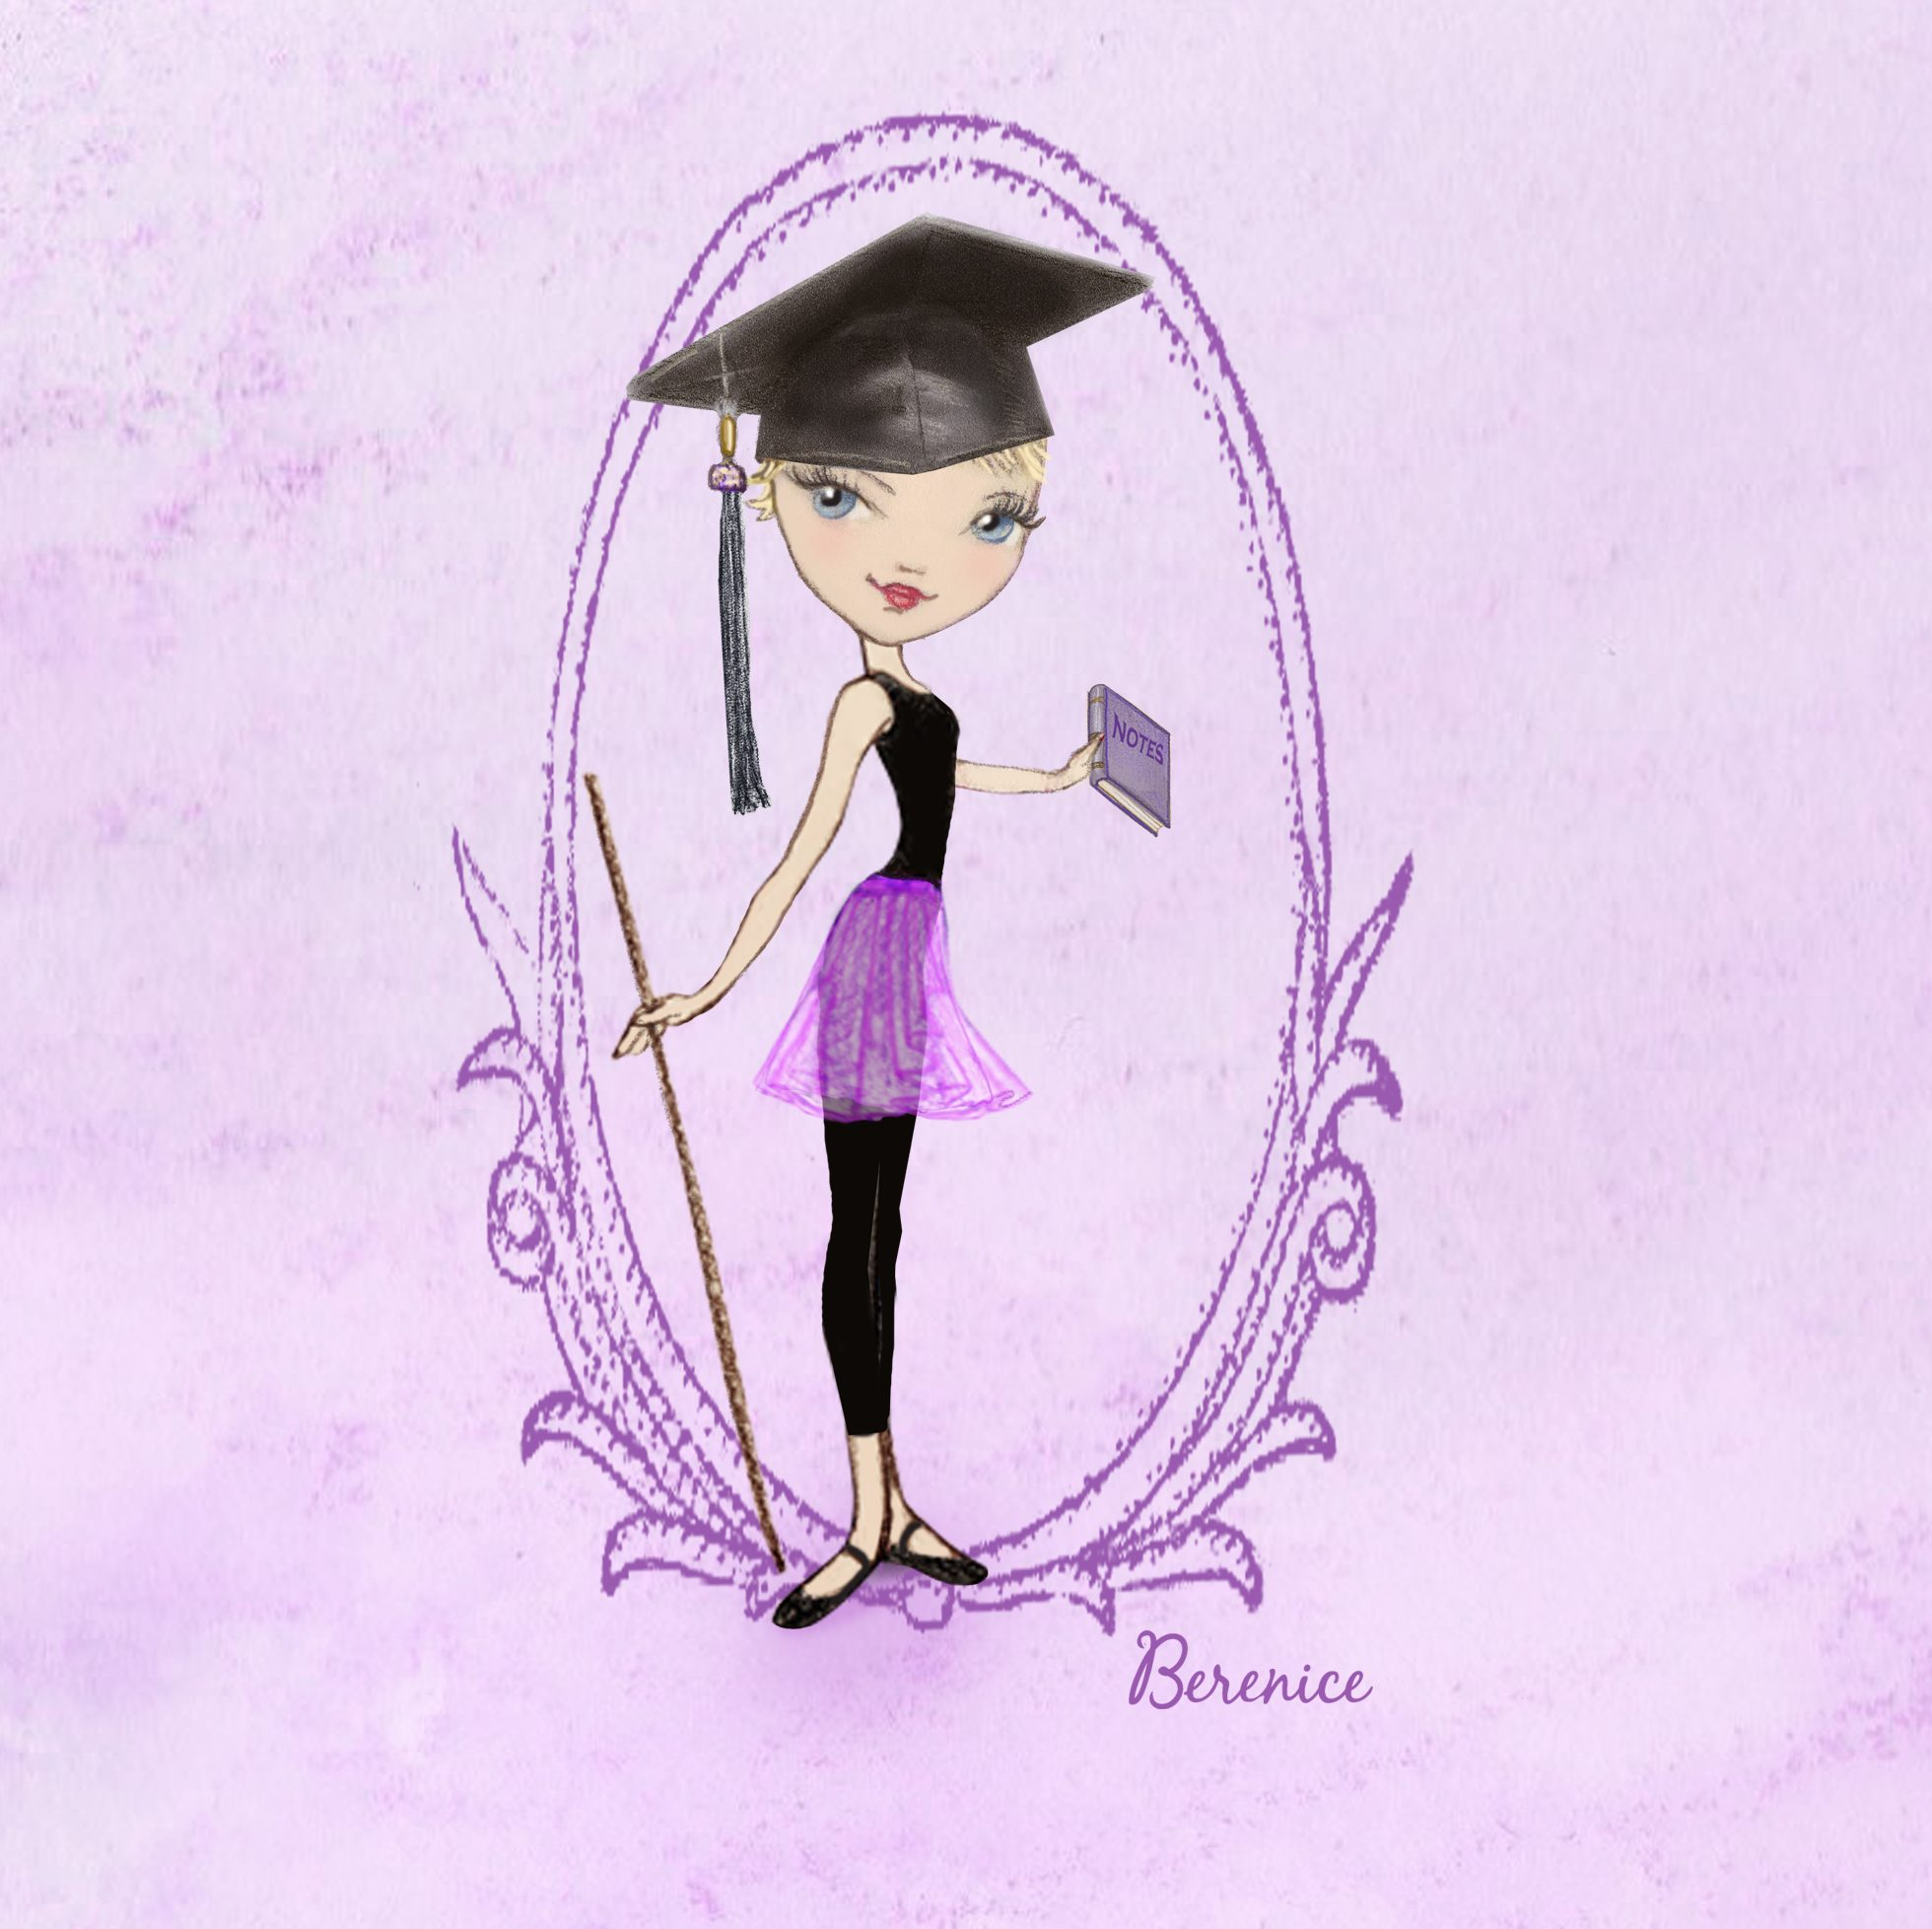 'Dance Teacher' illustration for Georgina Butler by Ballet Papier artist Berenice. An illustration of Georgina dressed in a black leotard and purple ballet skirt, with a graduate's mortarboard hat on her head. She is holding a notebook in her left hand. In her right hand she is holding an old-fashioned bamboo cane (historically used by ballet teachers to demonstrate verticality and correct placement to students).